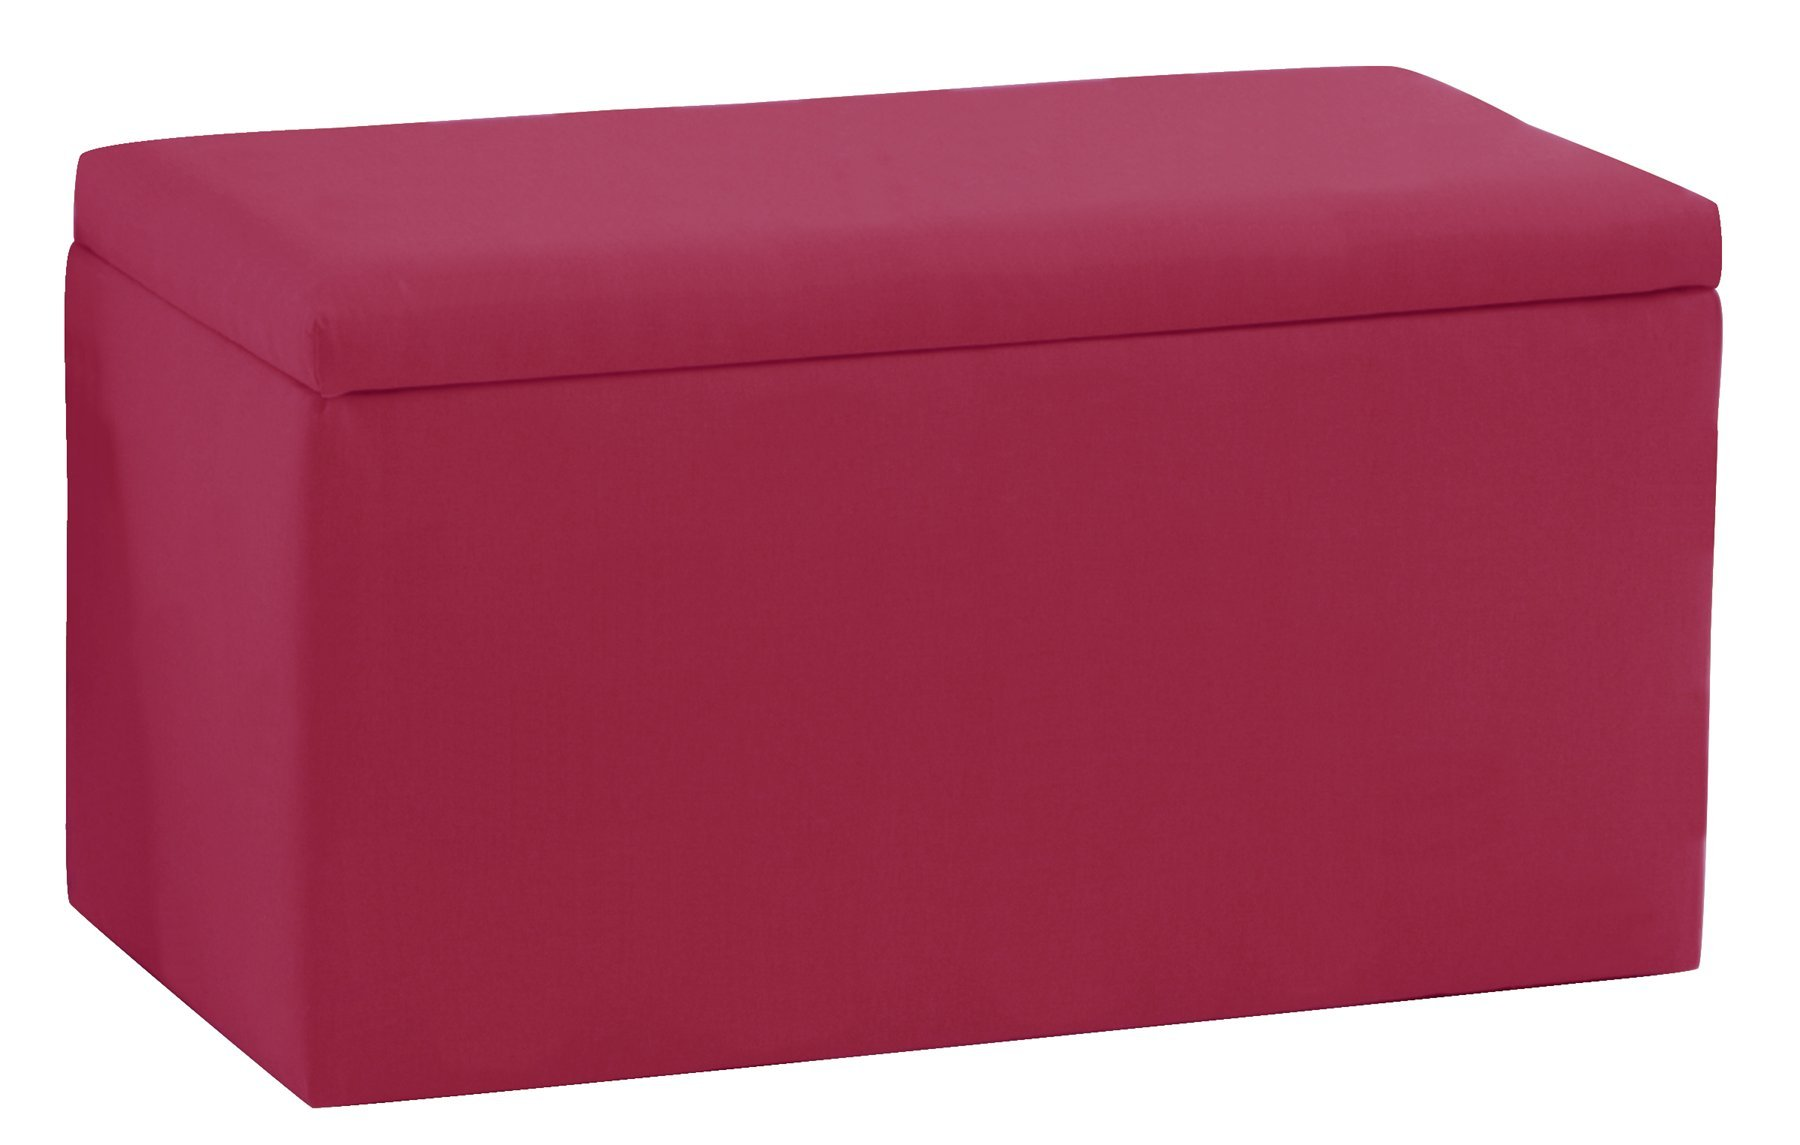 Smarty Pants Kid'S Storage Bench By Skyline Furniture In French Pink Cotton